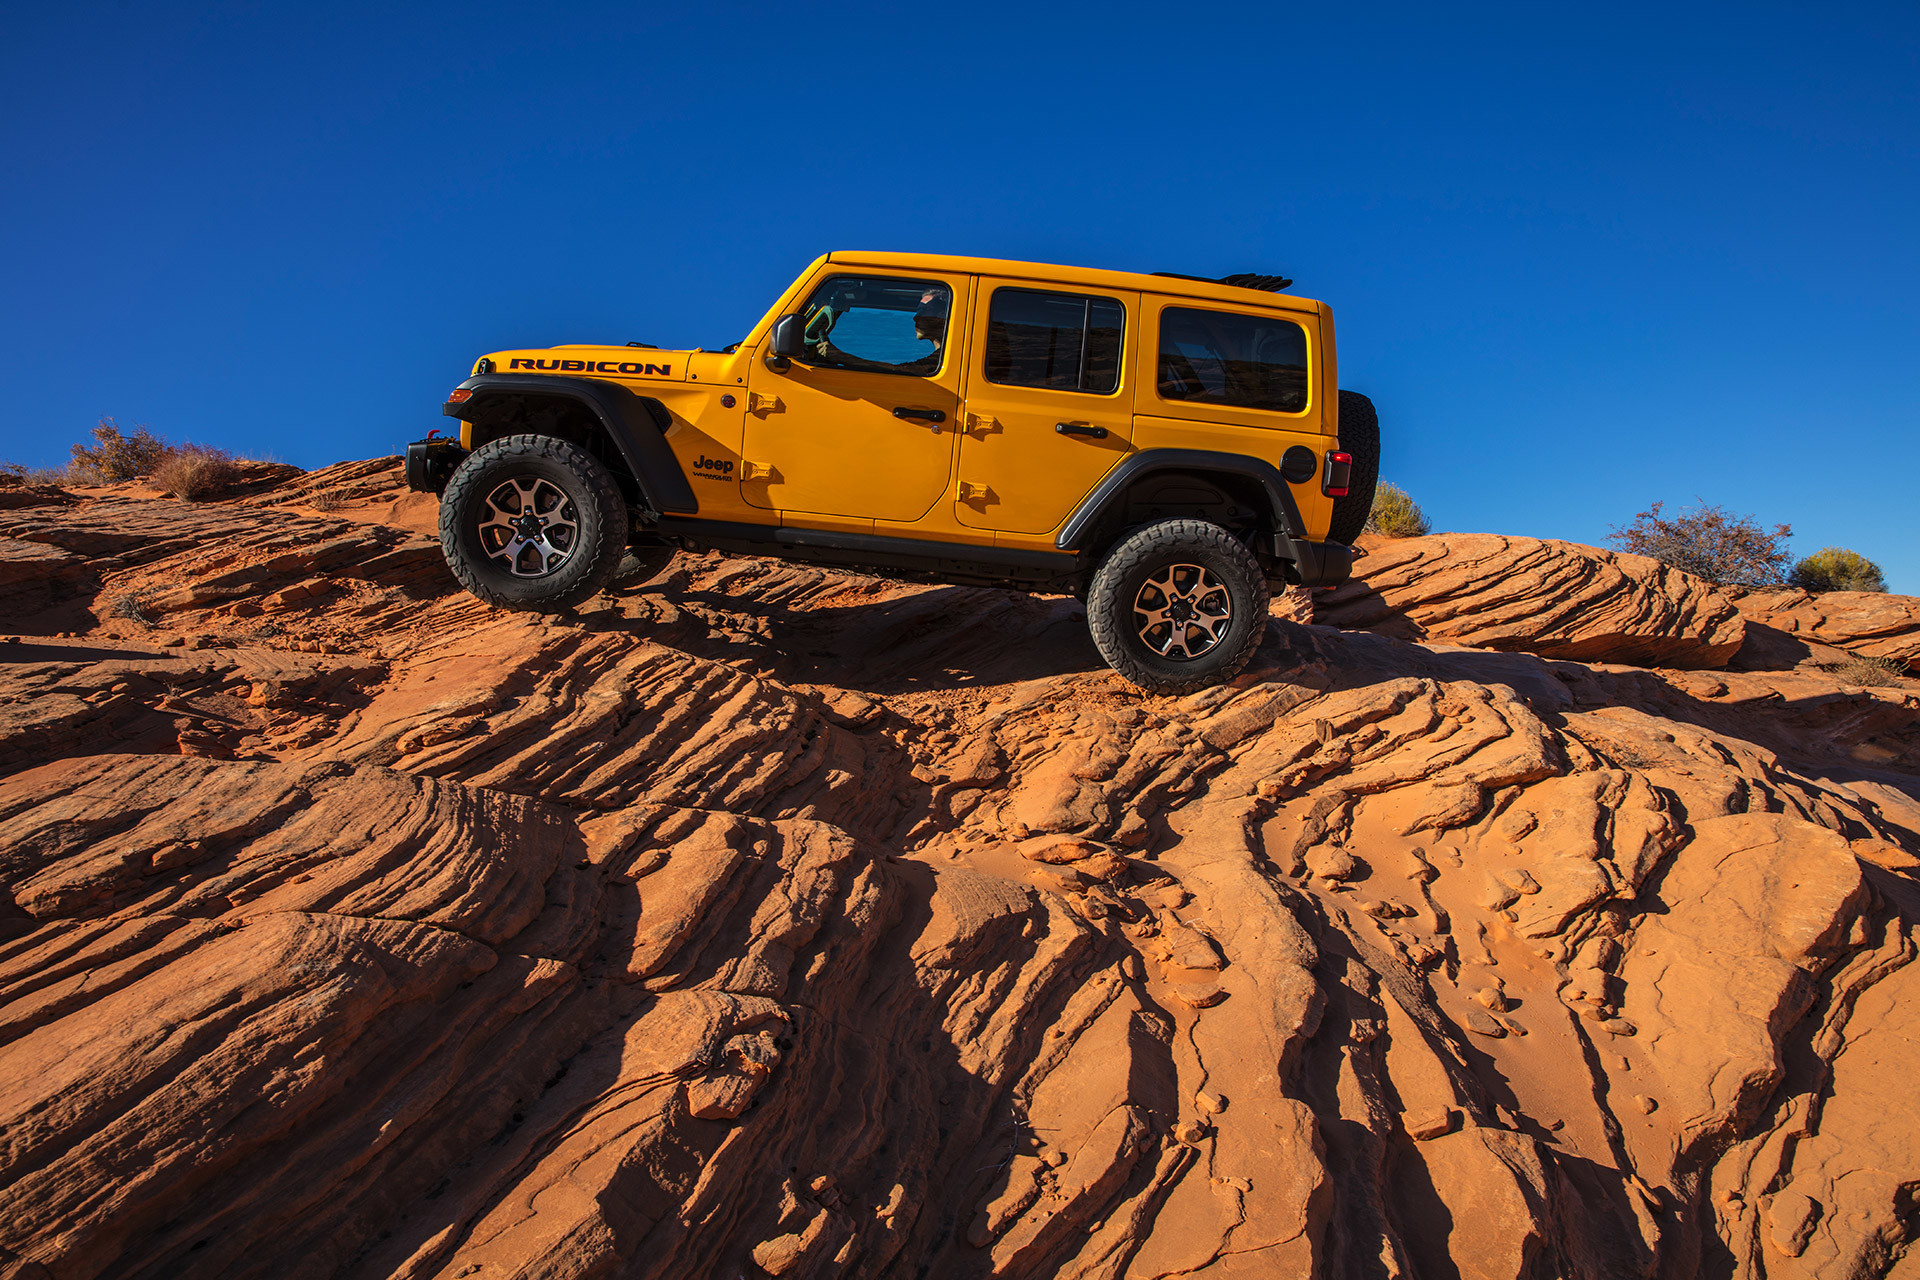 2021 Jeep Wrangler showing the EcoDiesel engine.